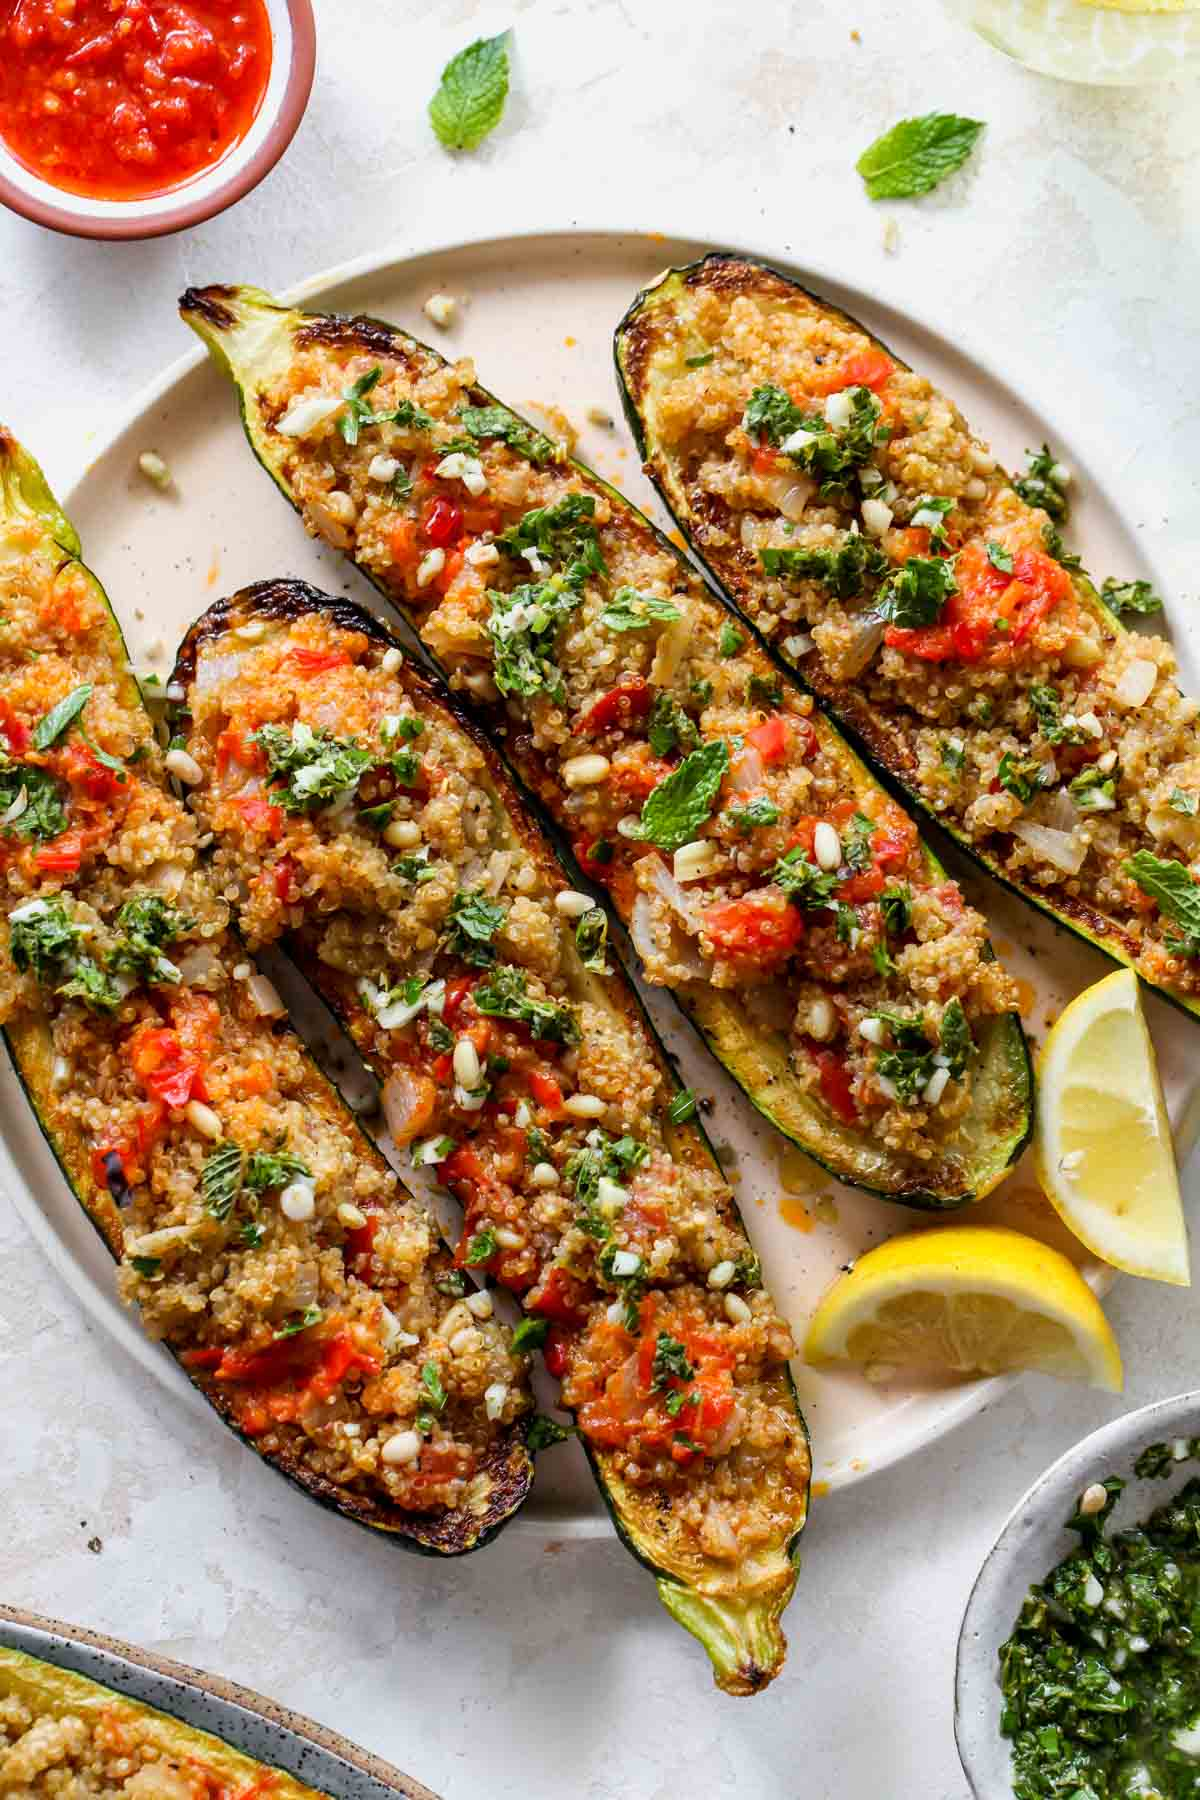 Zucchini boats filled with quinoa on a plate with lemon wedges